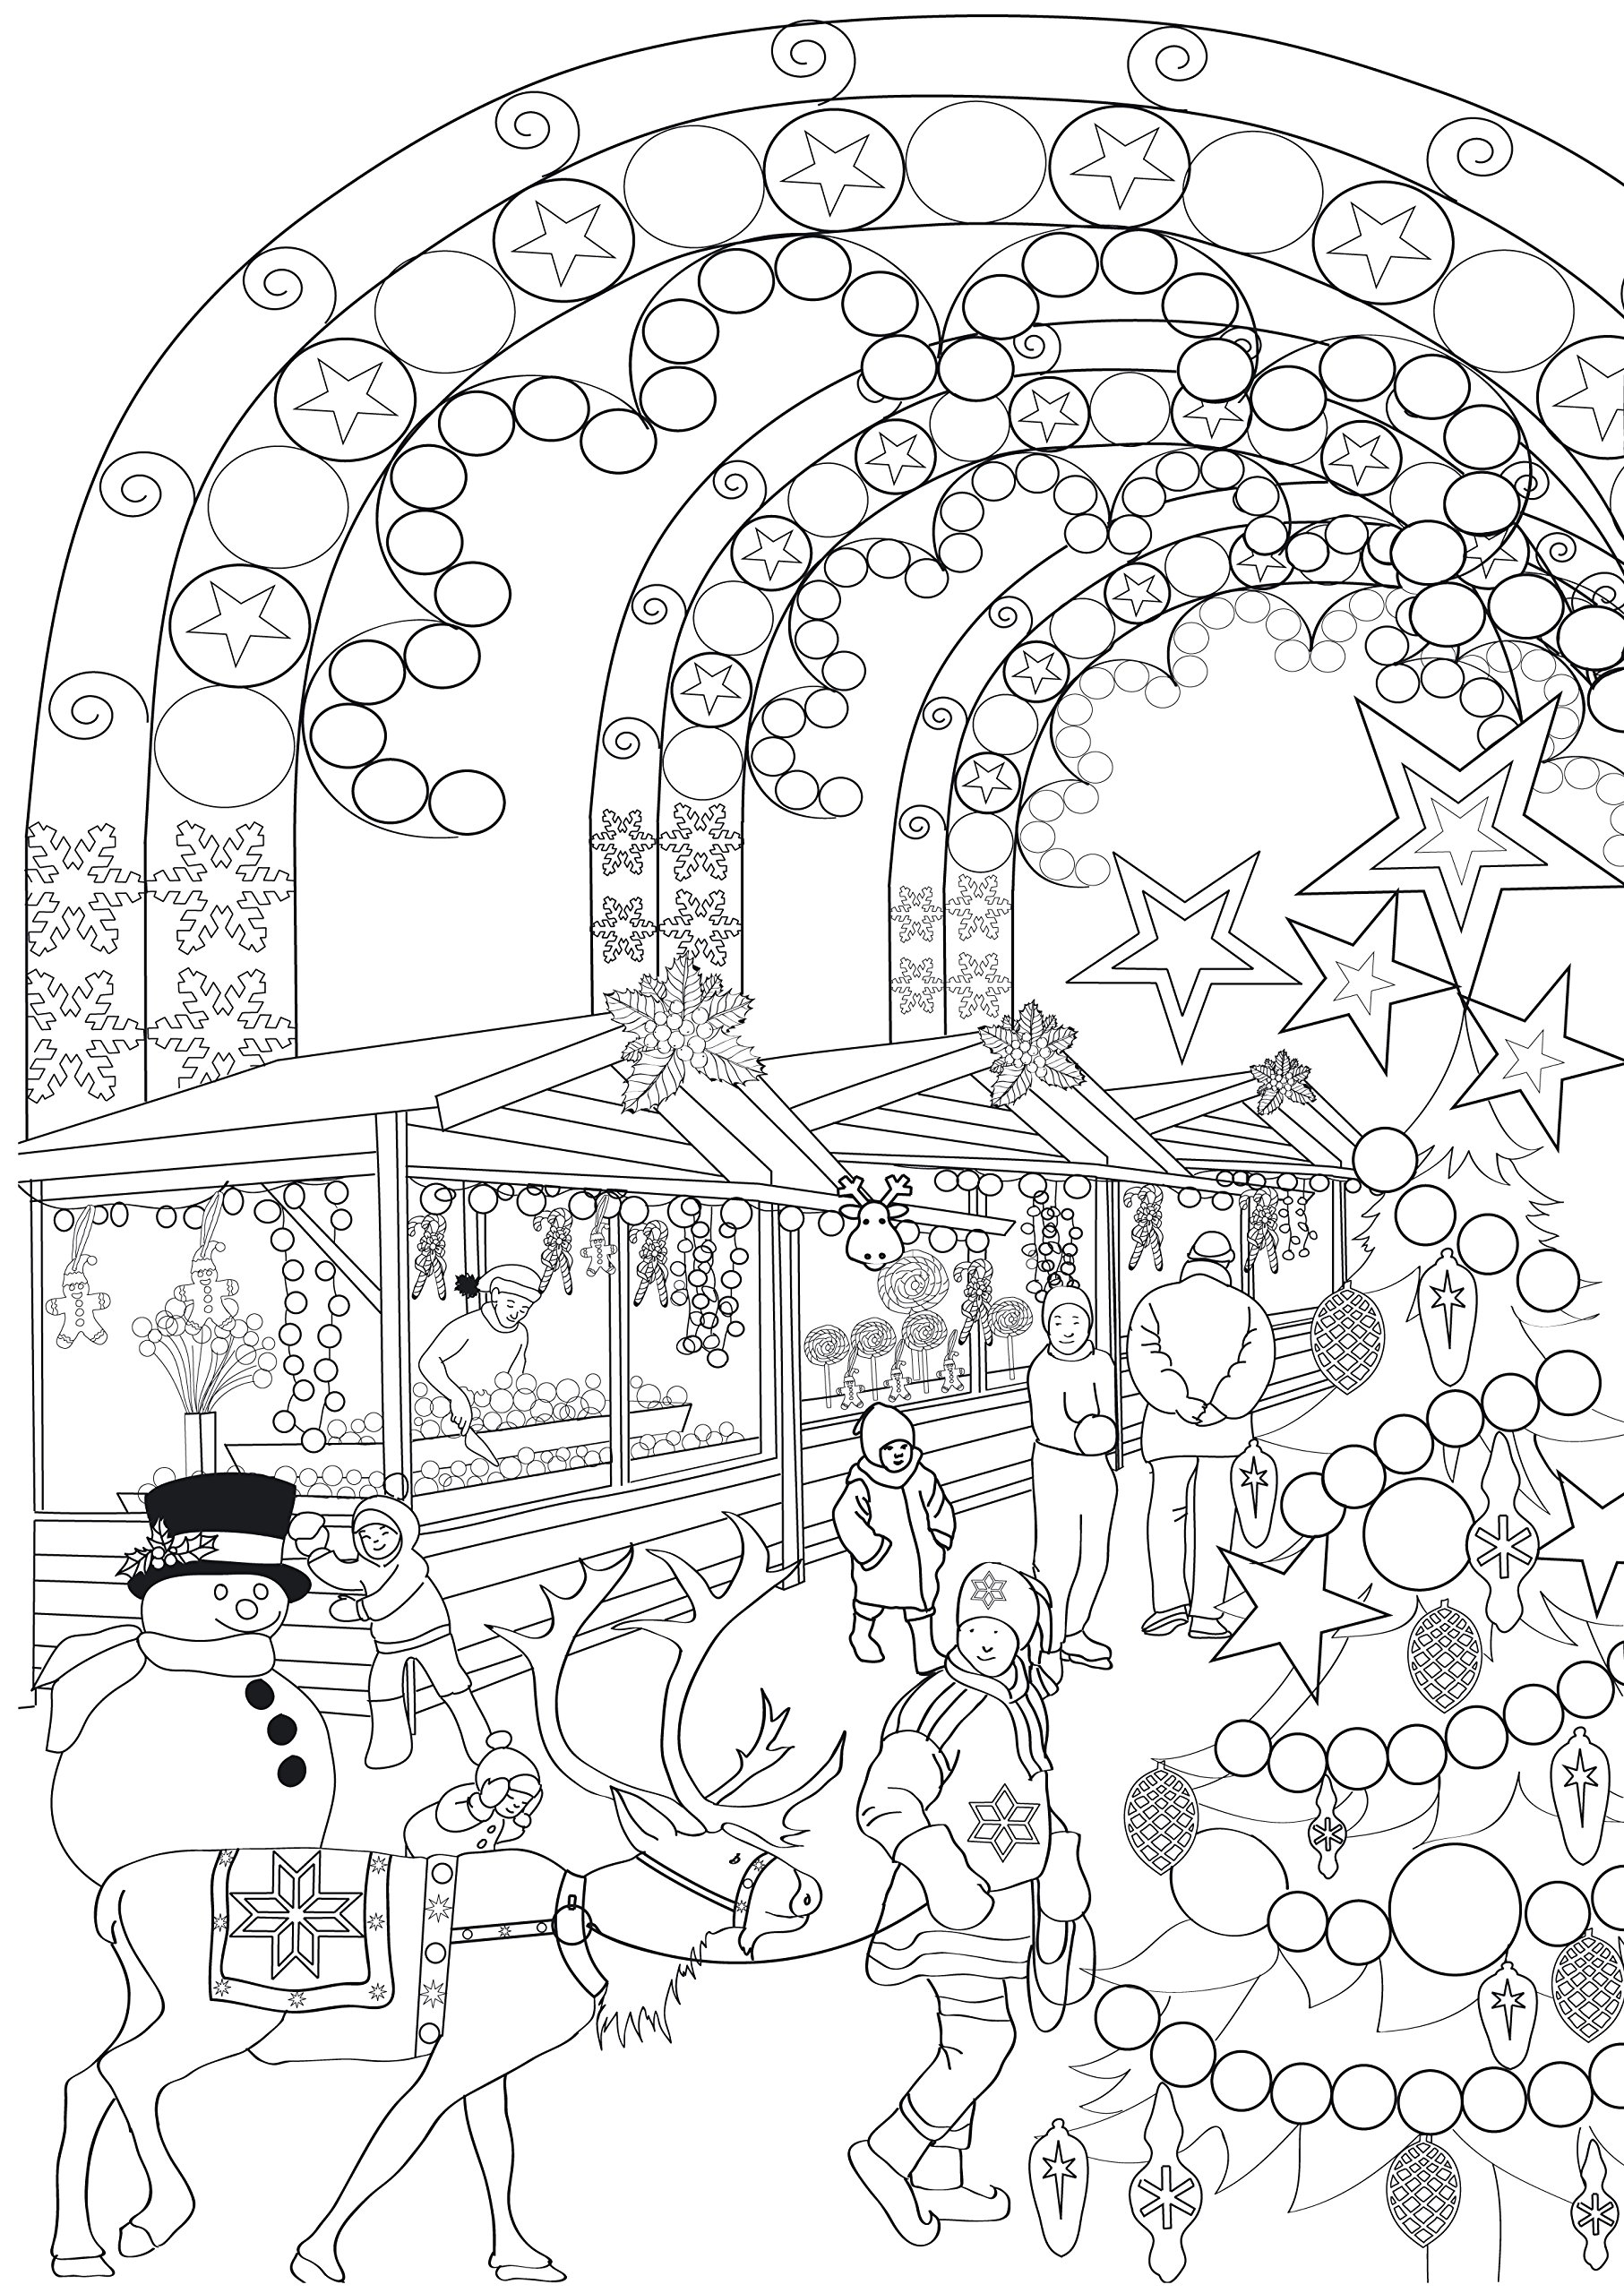 Hiver 100 coloriages anti stress Art therapie French Edition Julie Terrazonni Hachette Amazon Books